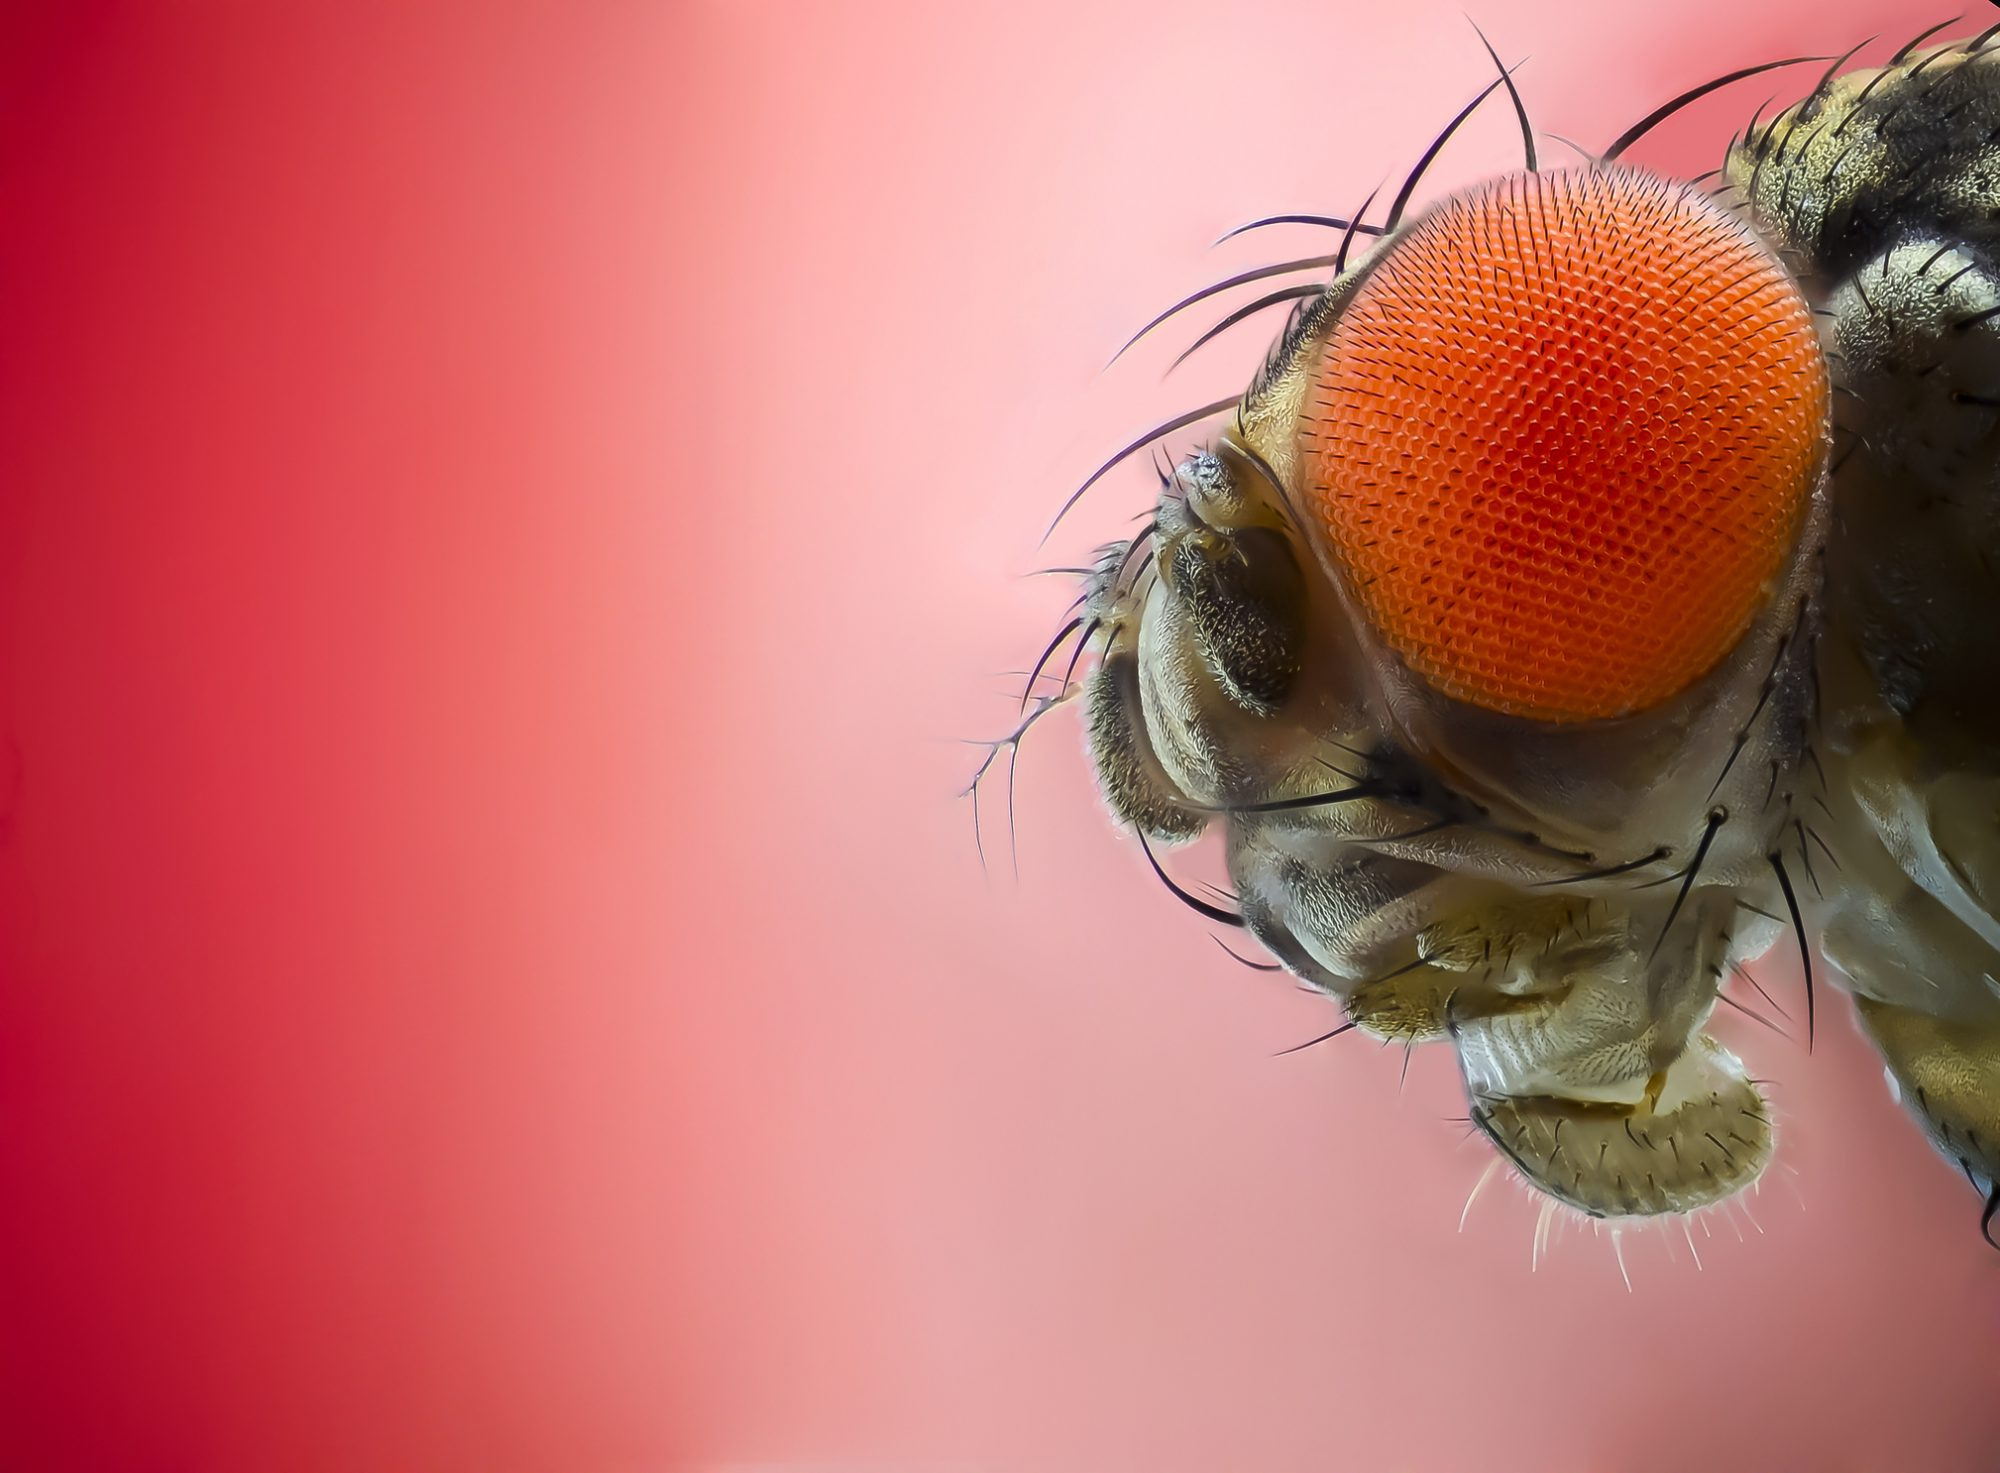 Close up of a fruit fly.